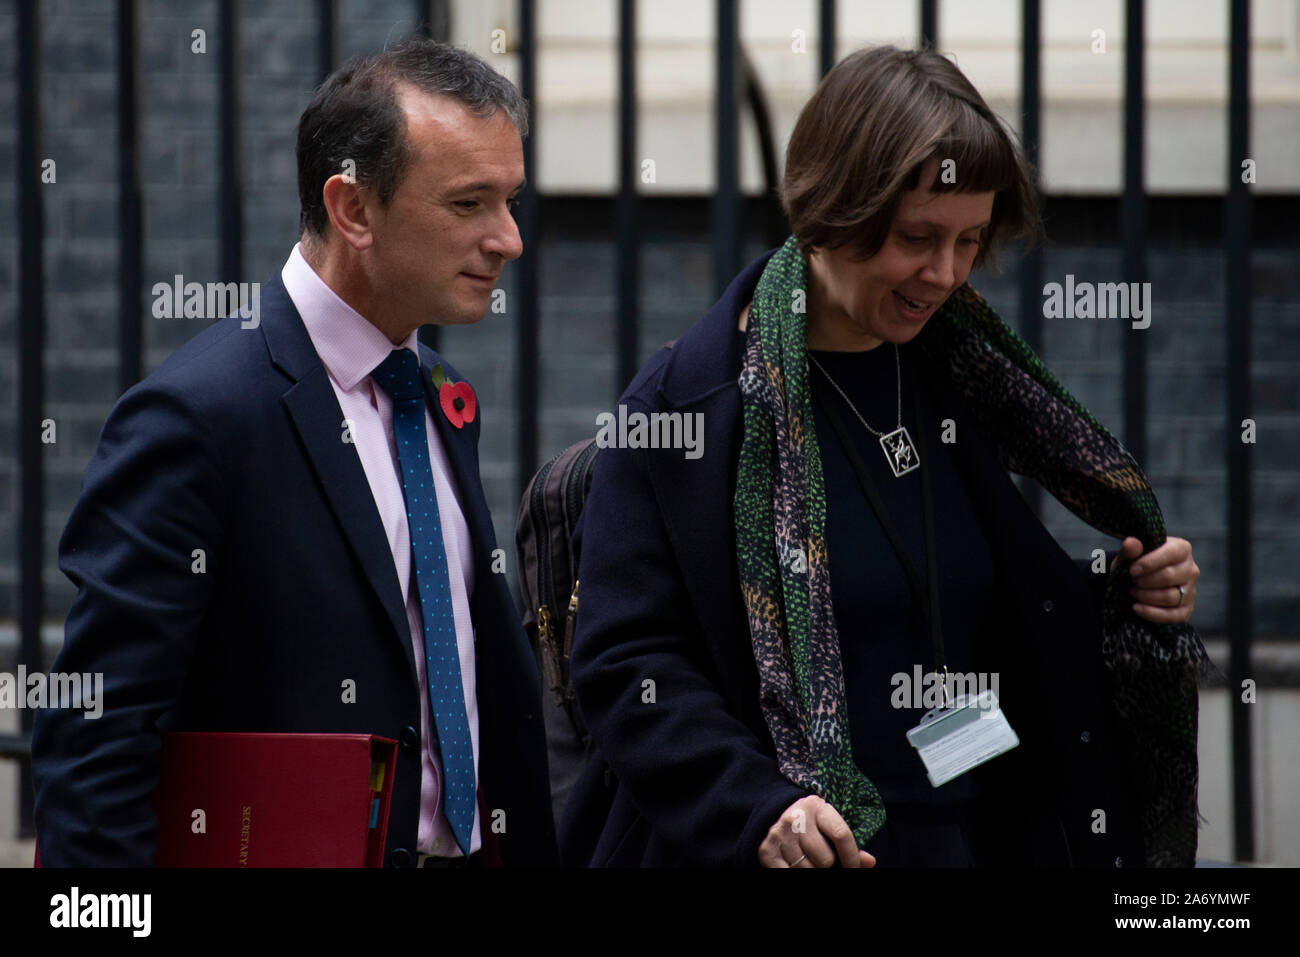 London, UK. 29th October 2019. Alun Cairns, Secretary of State for Wales leaving Downing Street after a Cabinet Meeting. Claire Doherty/Alamy Live News. Stock Photo